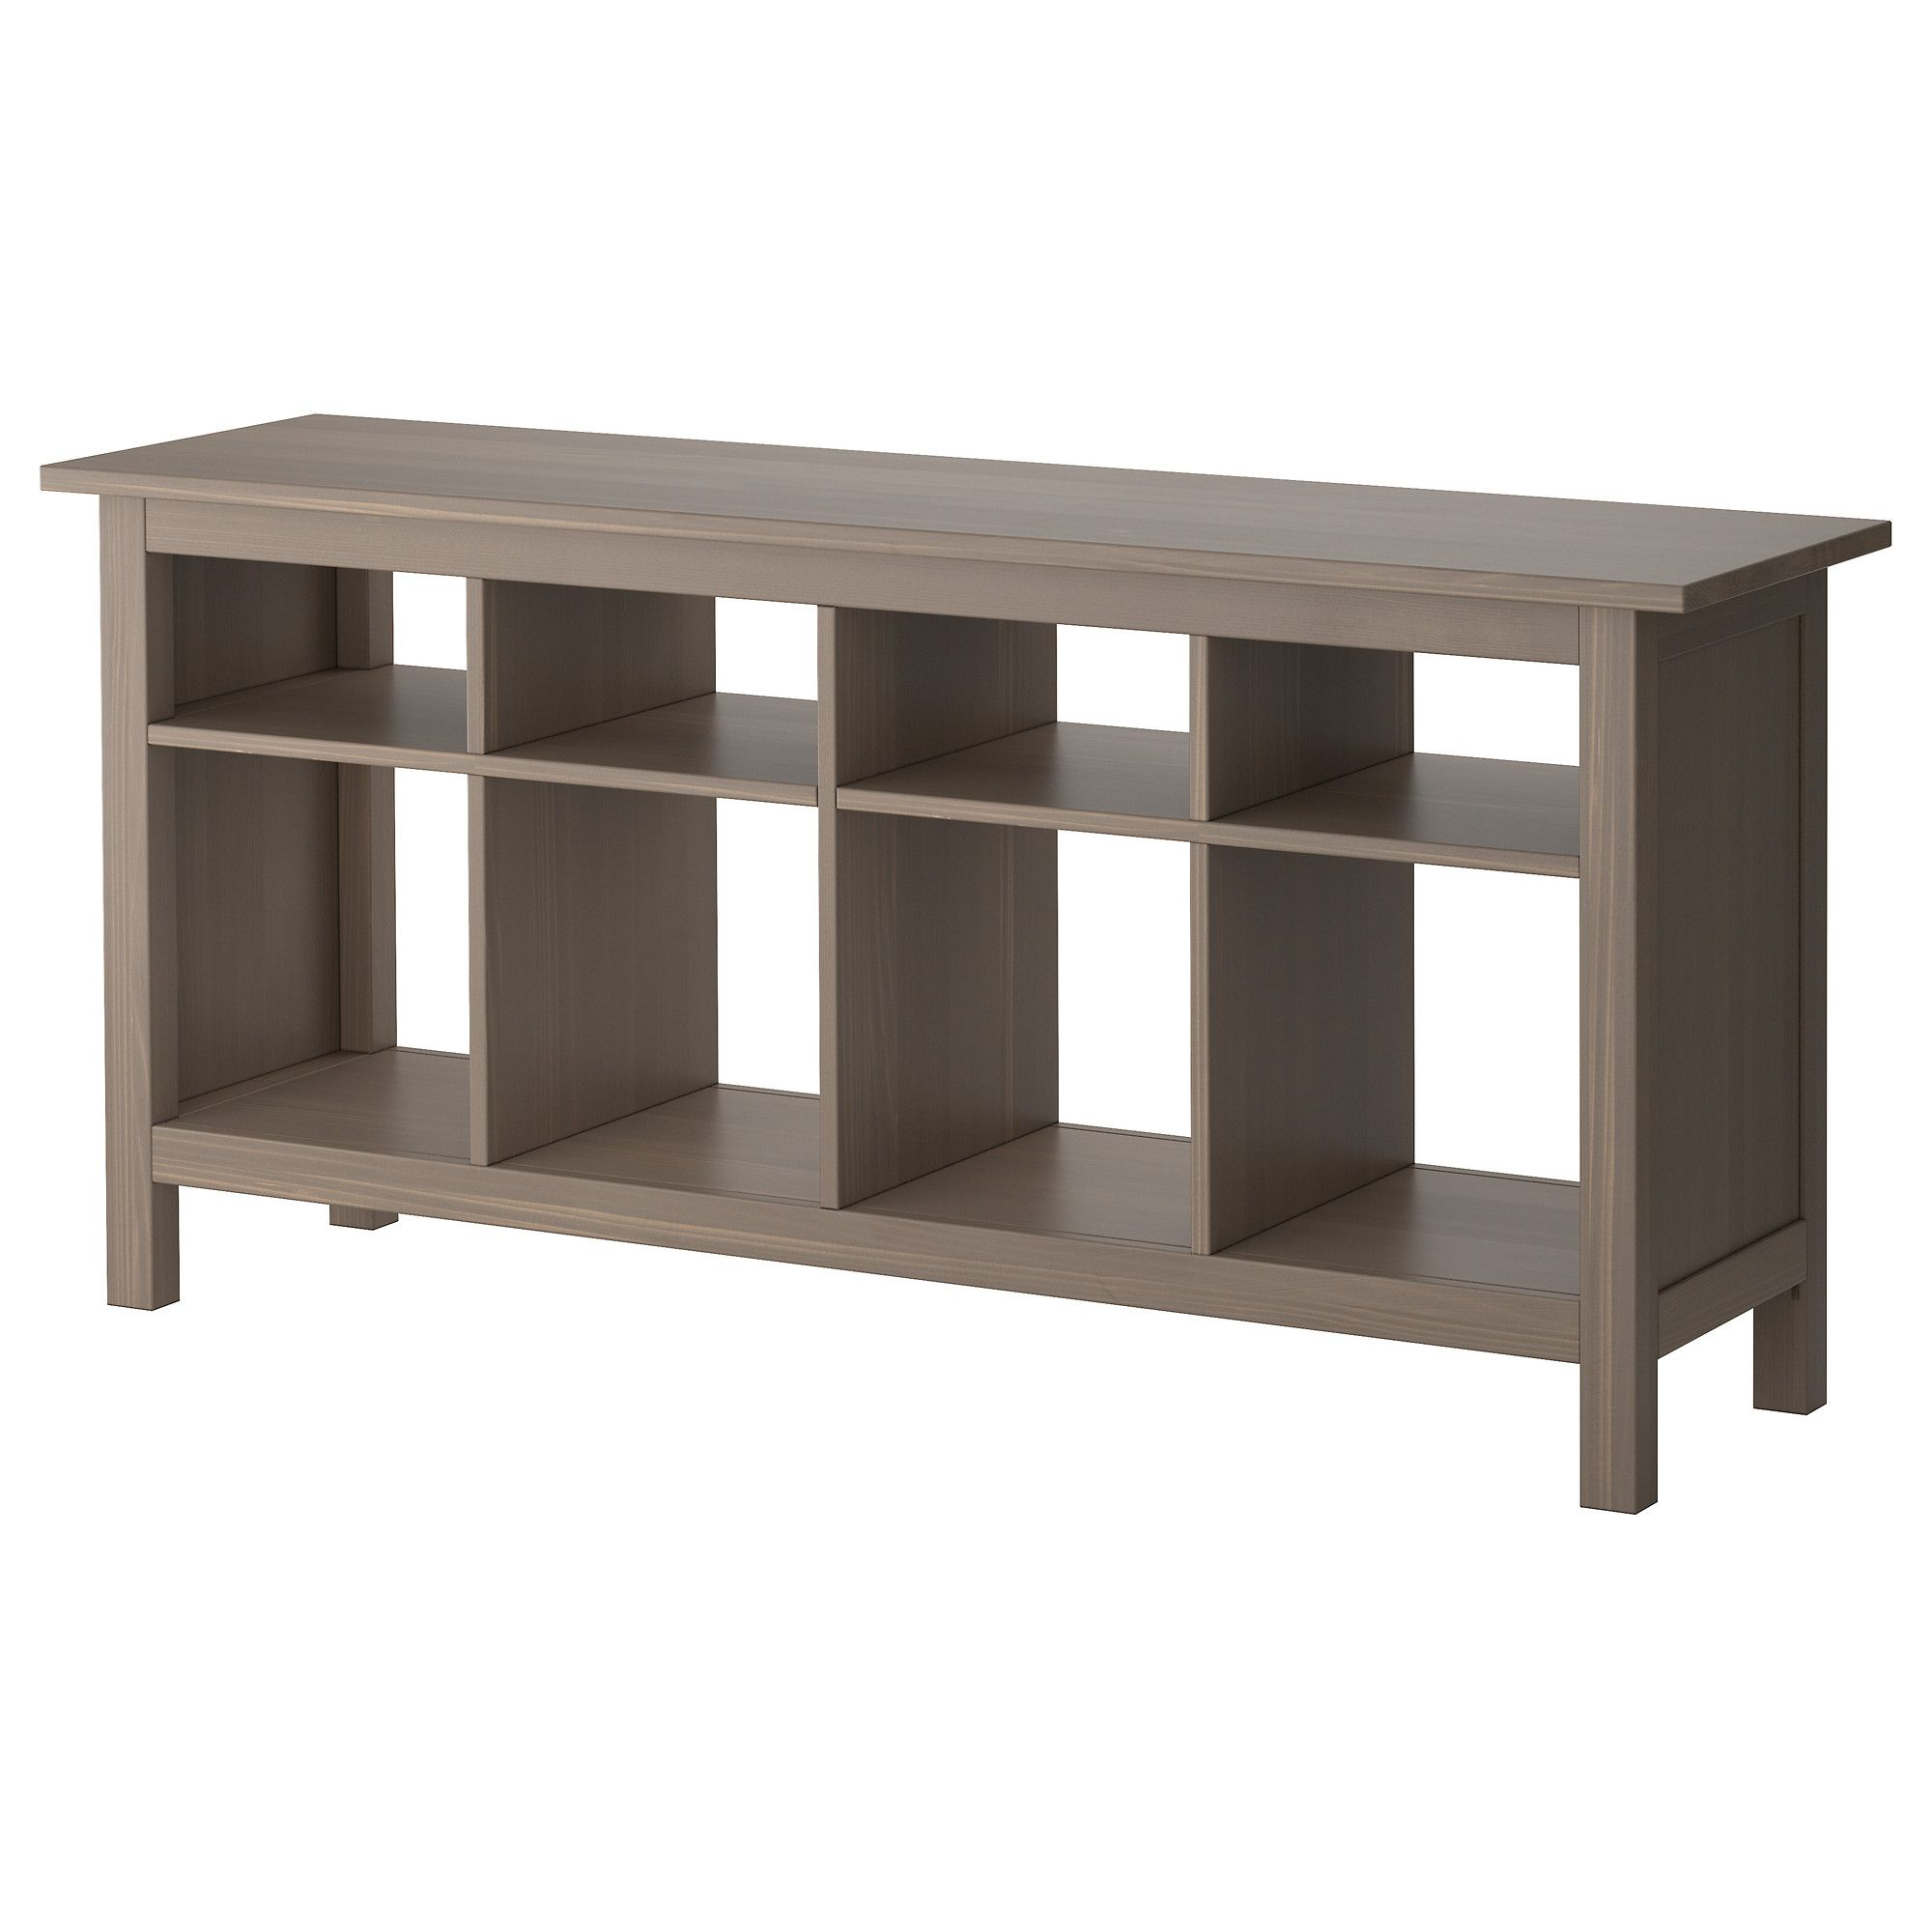 Hemnes sofa table gray brown ikea for just 179 future home hemnes sofa table ikea solid wood has a natural feel fill with baskets and use as toy storage for the kids in this grey brown color or in black brown geotapseo Choice Image